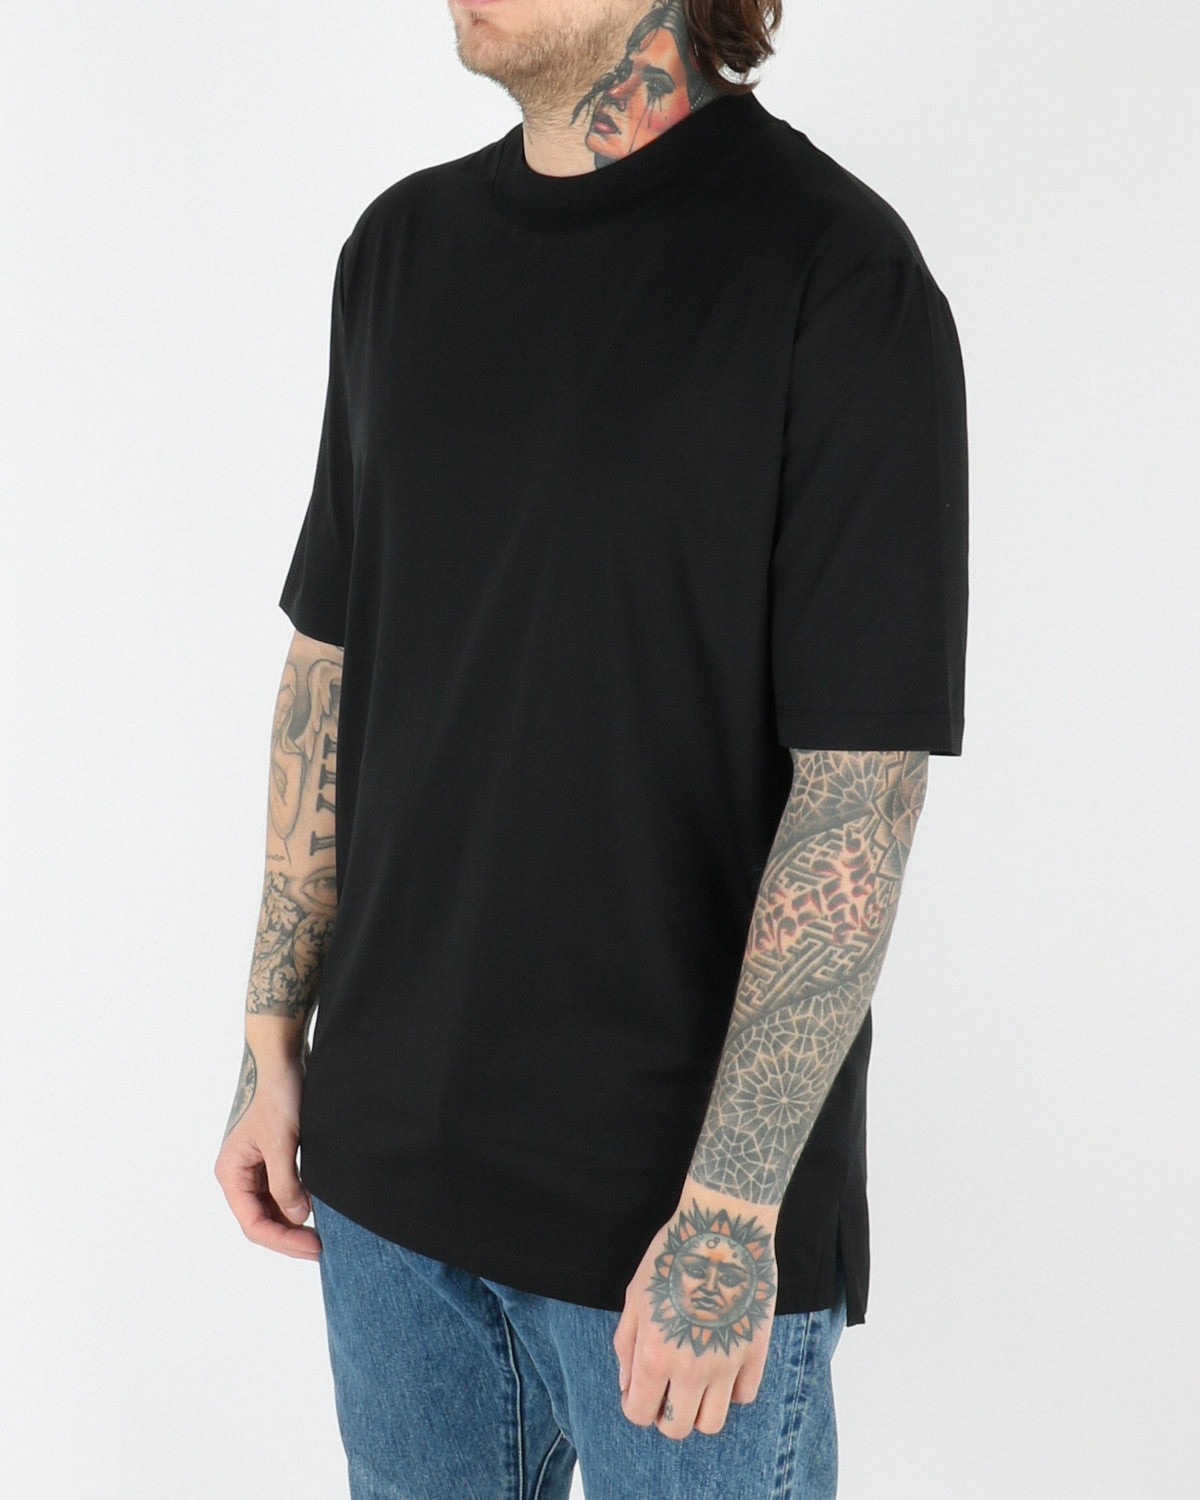 whyred_adham t-shirt_black_view_2_2